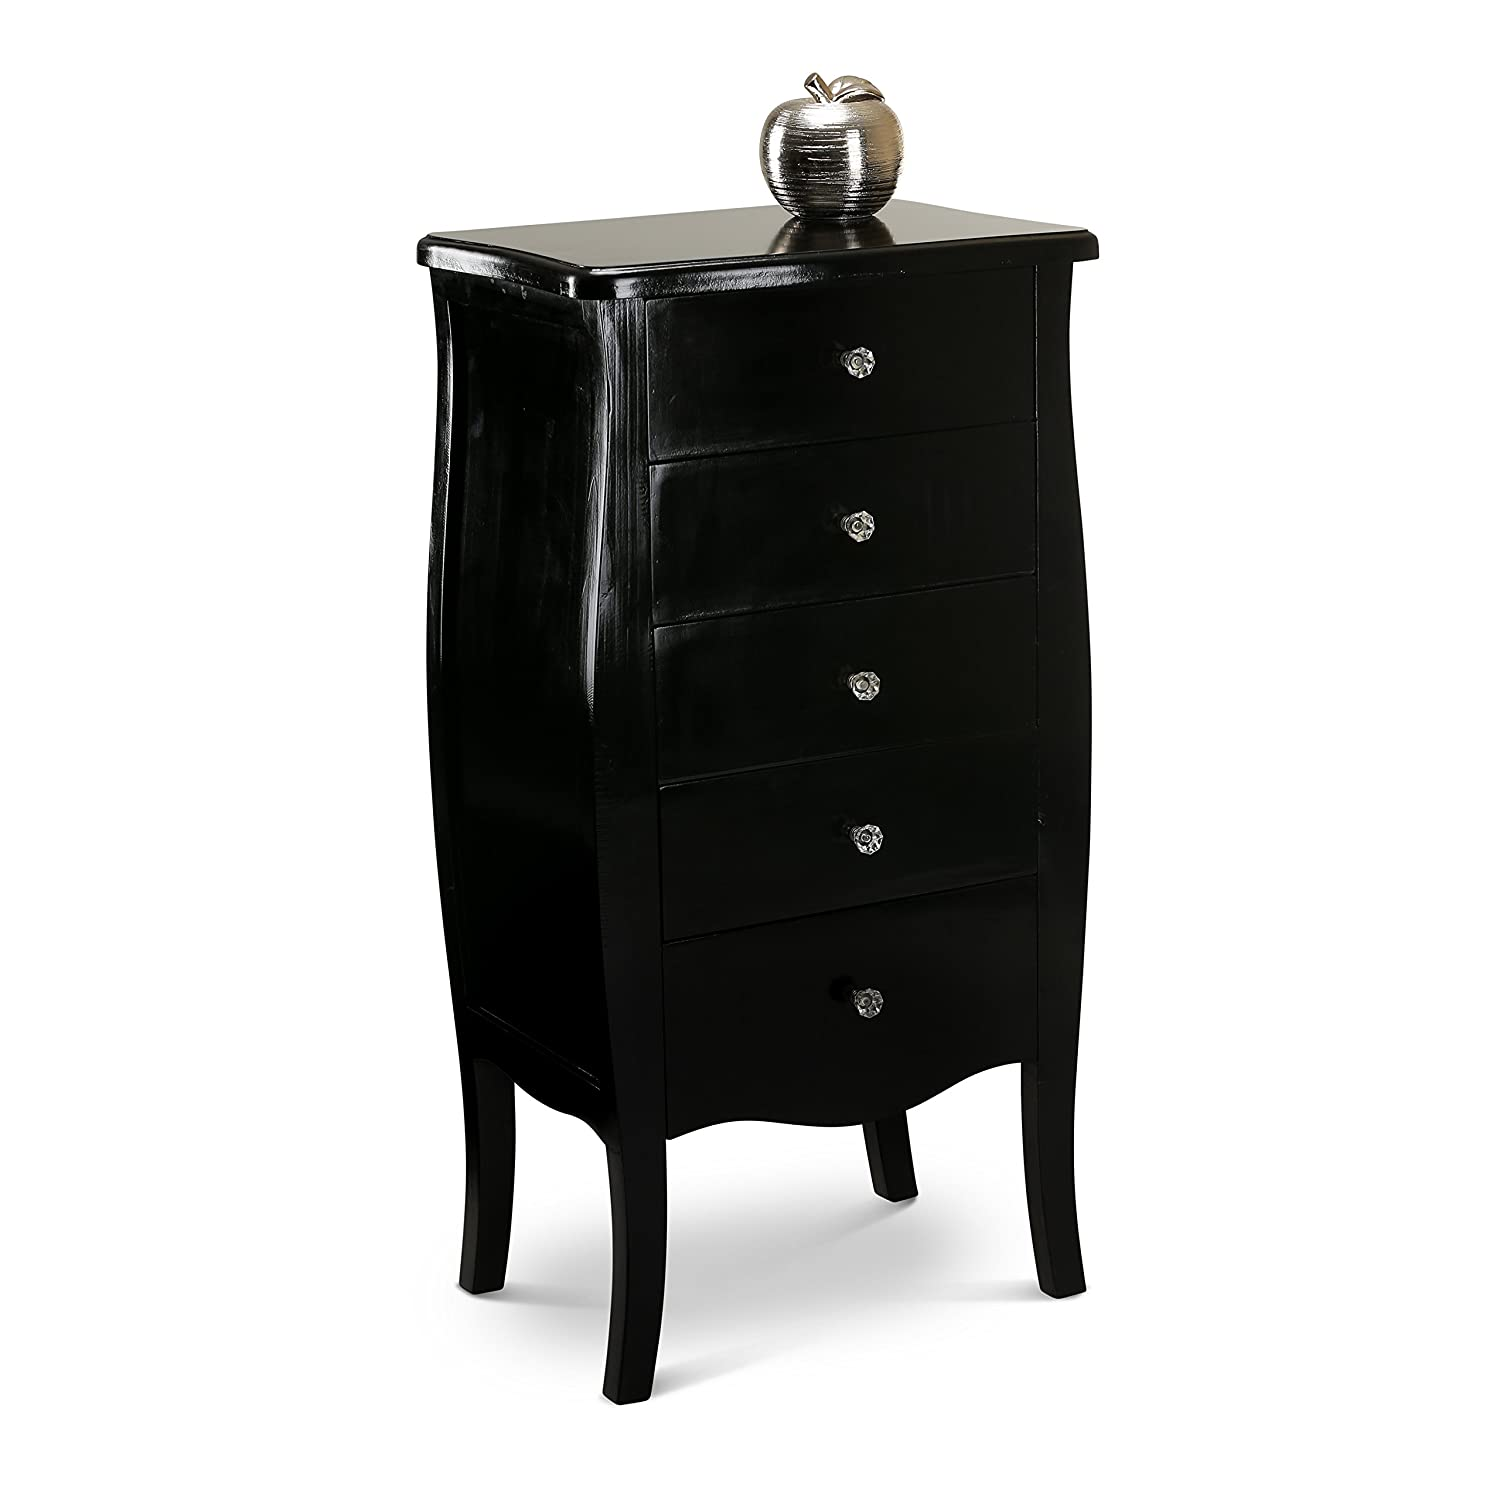 Black shabby chic furniture - Black Shabby Chic Console Side Table French Bedroom Hallway 2 3 5 Chest Drawers 5 Drawers Tallboy Amazon Co Uk Kitchen Home